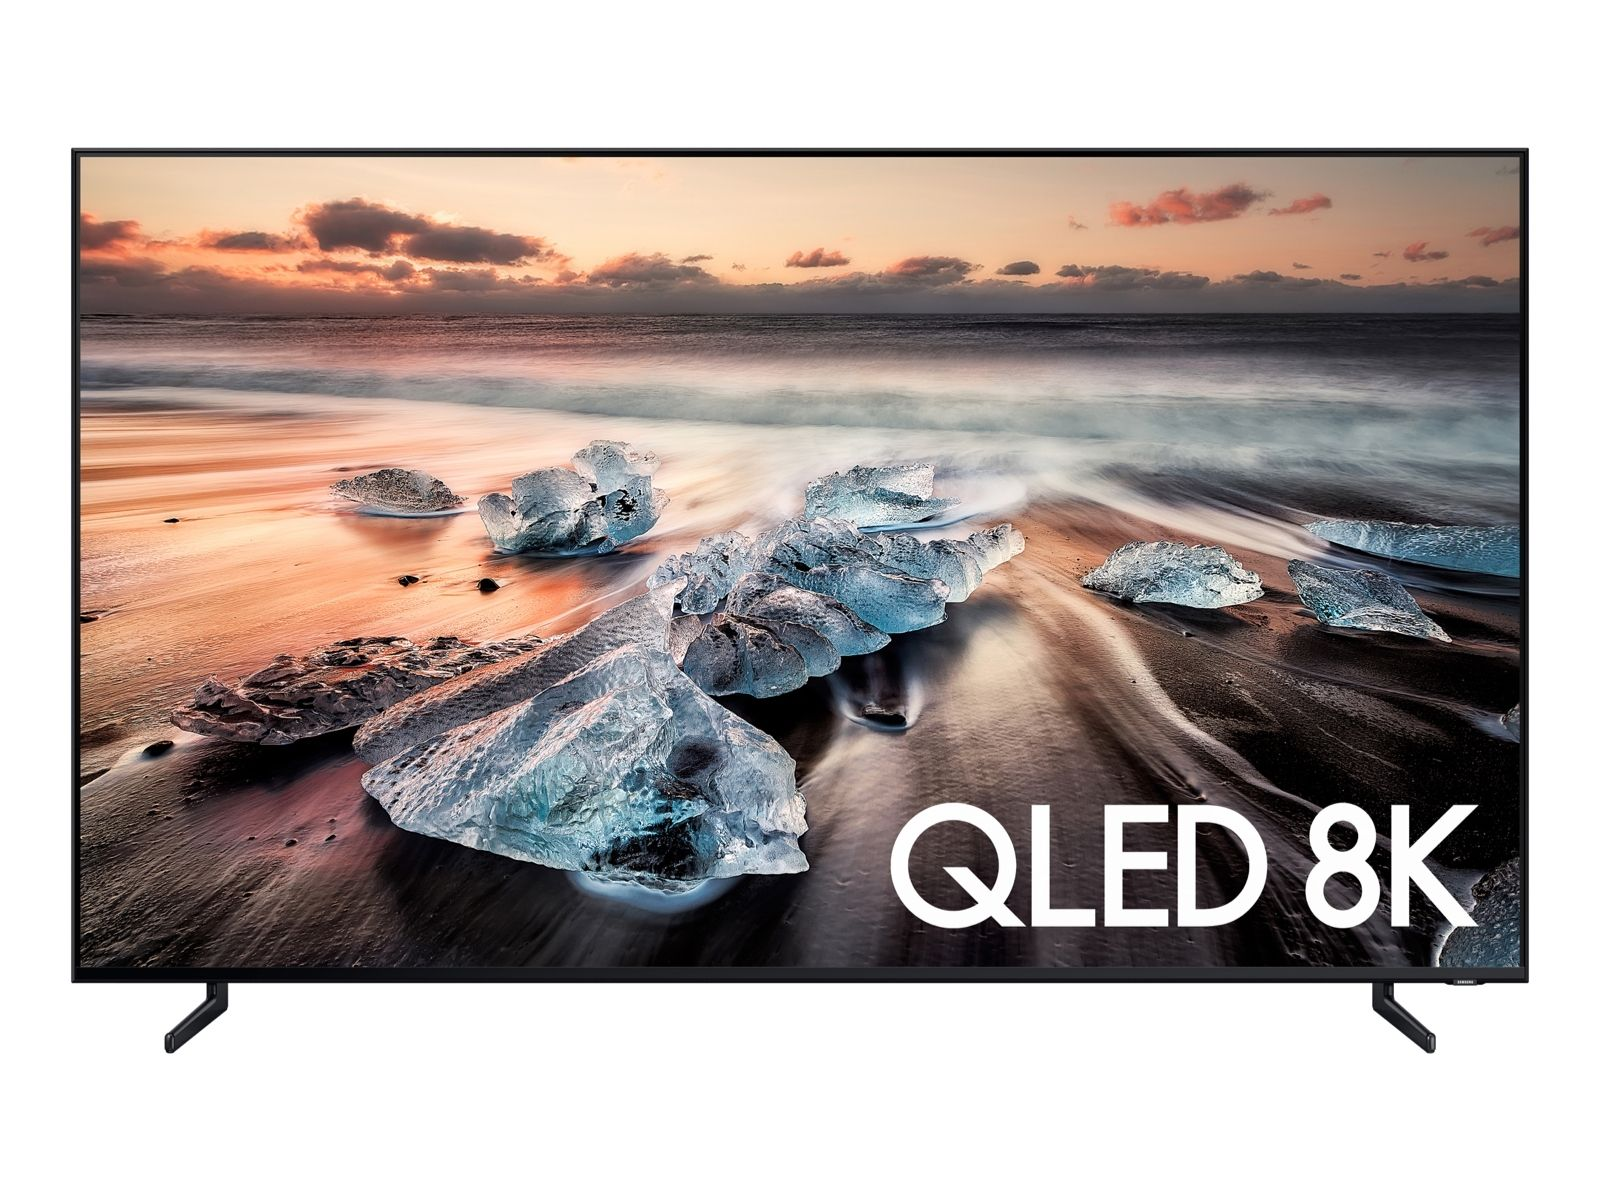 """Samsung 98"""" Class Q900 QLED Smart 8K UHD TV (2019) $59,999.99 + Free Shipping + $1200 back in points at Samsung.com"""